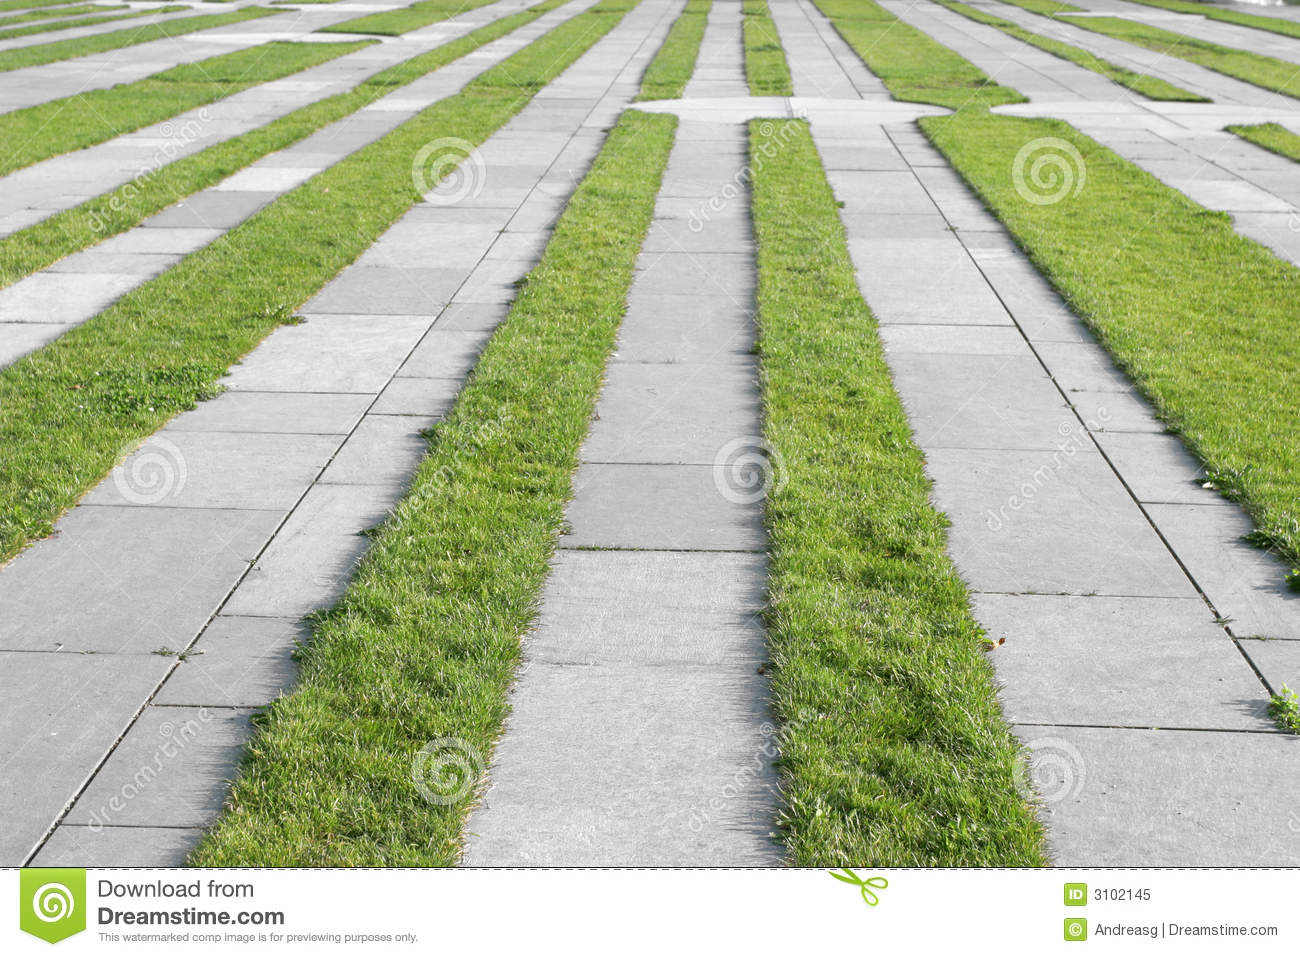 Grass Pavement Strips Royalty Free Stock Photo Image  : grass pavement strips 3102145 from www.dreamstime.com size 1300 x 957 jpeg 223kB